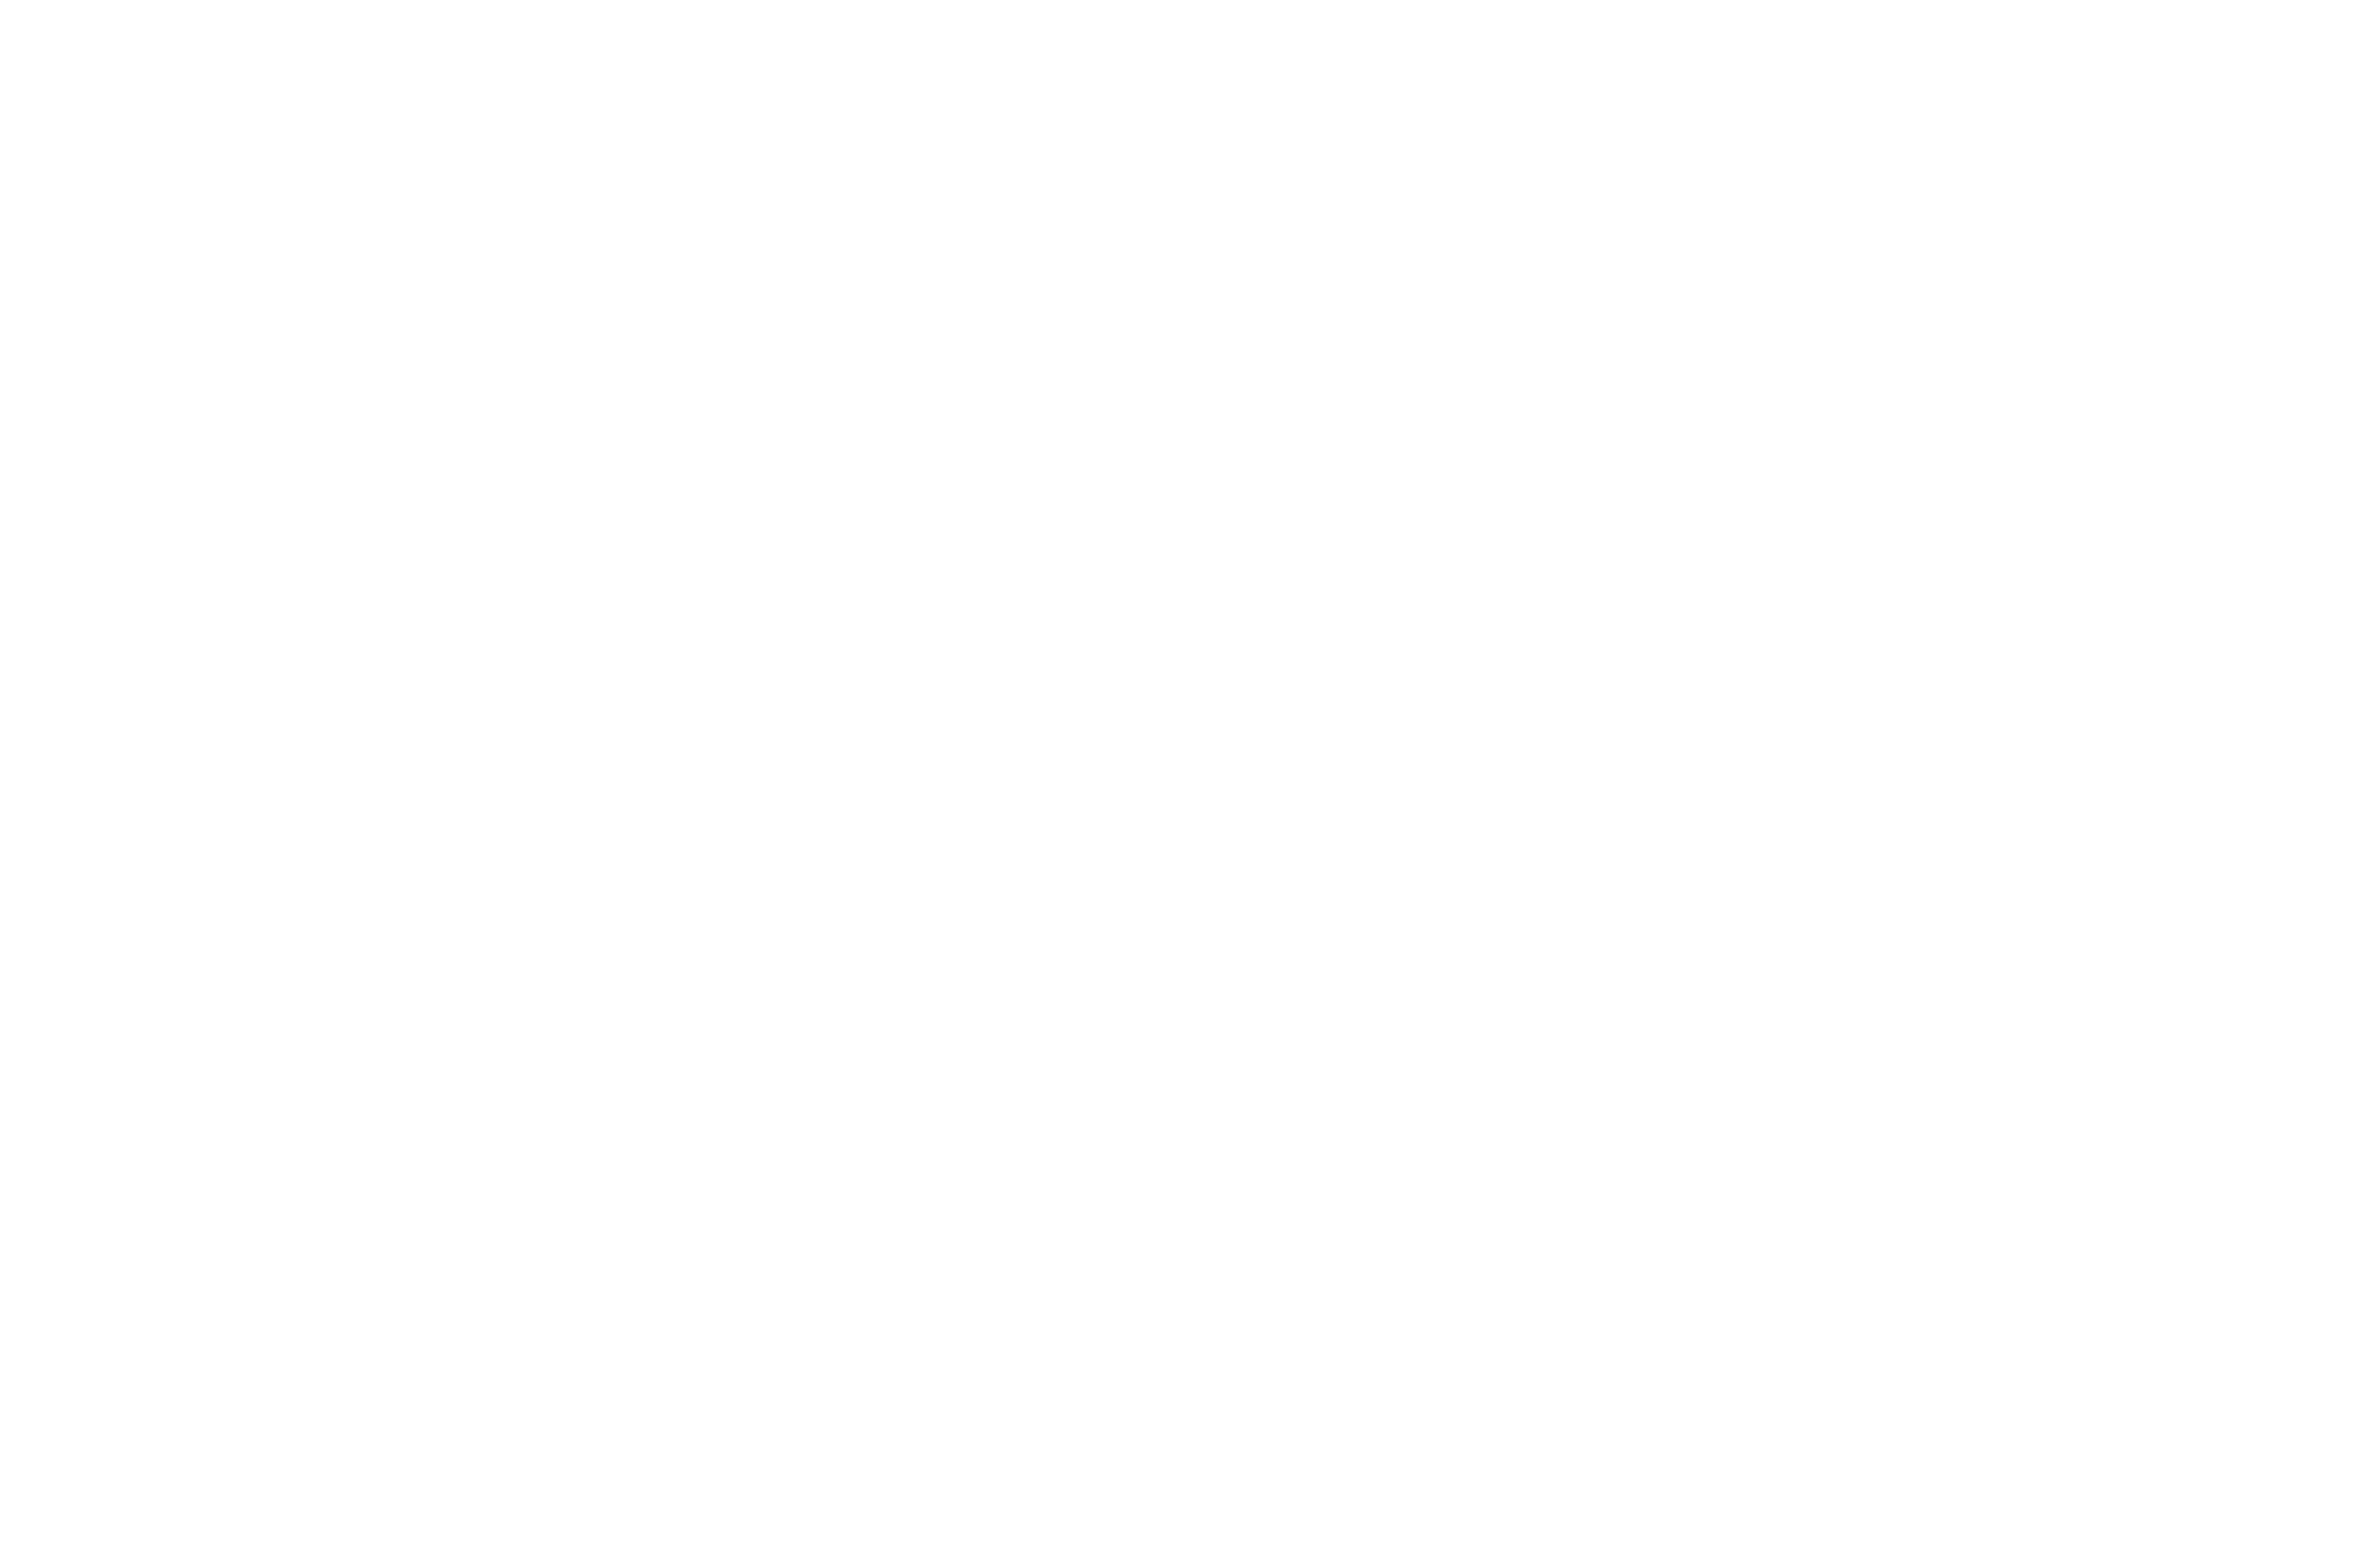 Fb live logo png. Facebook campaign distract campaignpaid